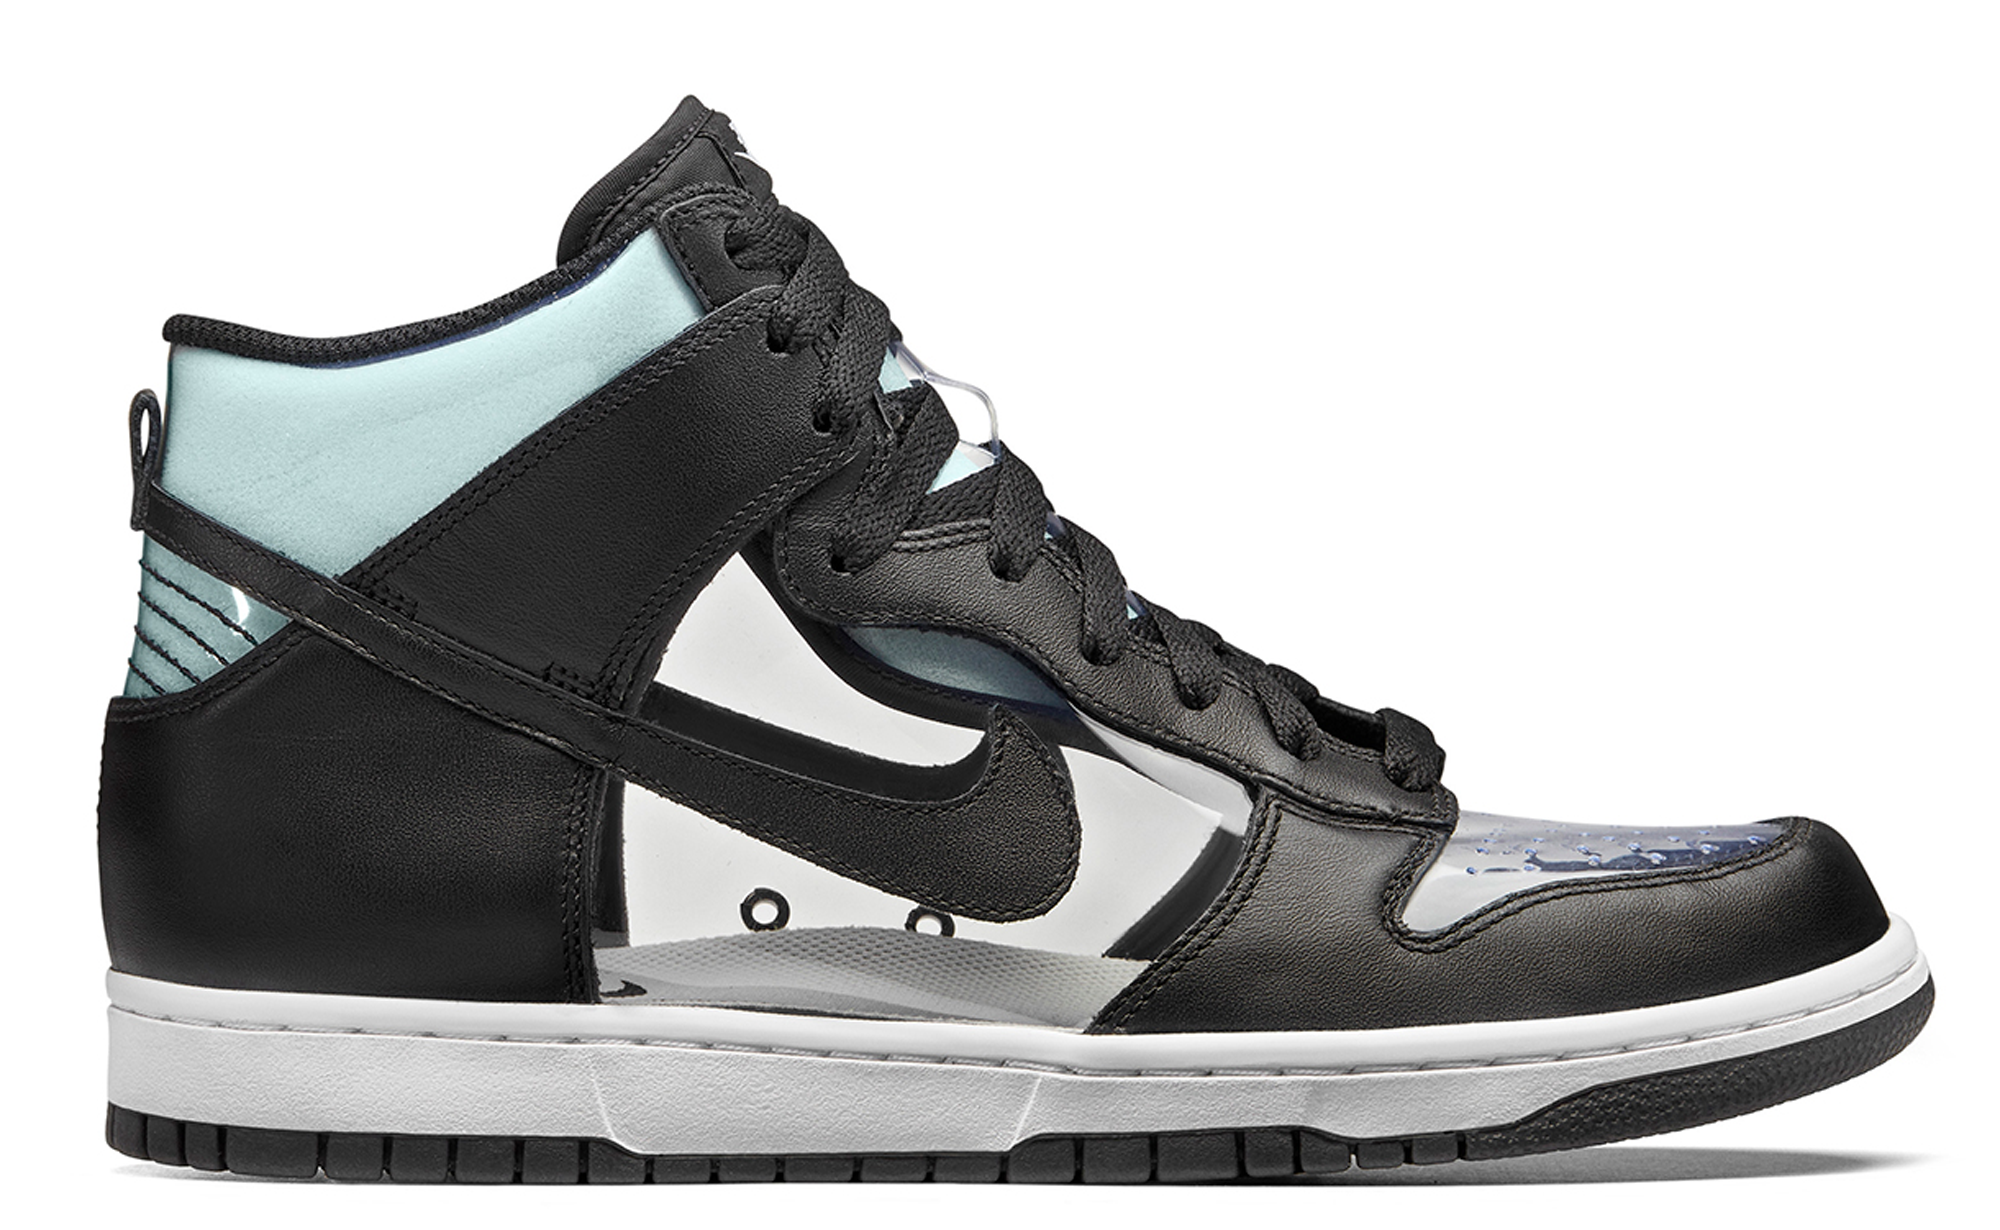 Nike Dunk High COMME des GARCONS Clear